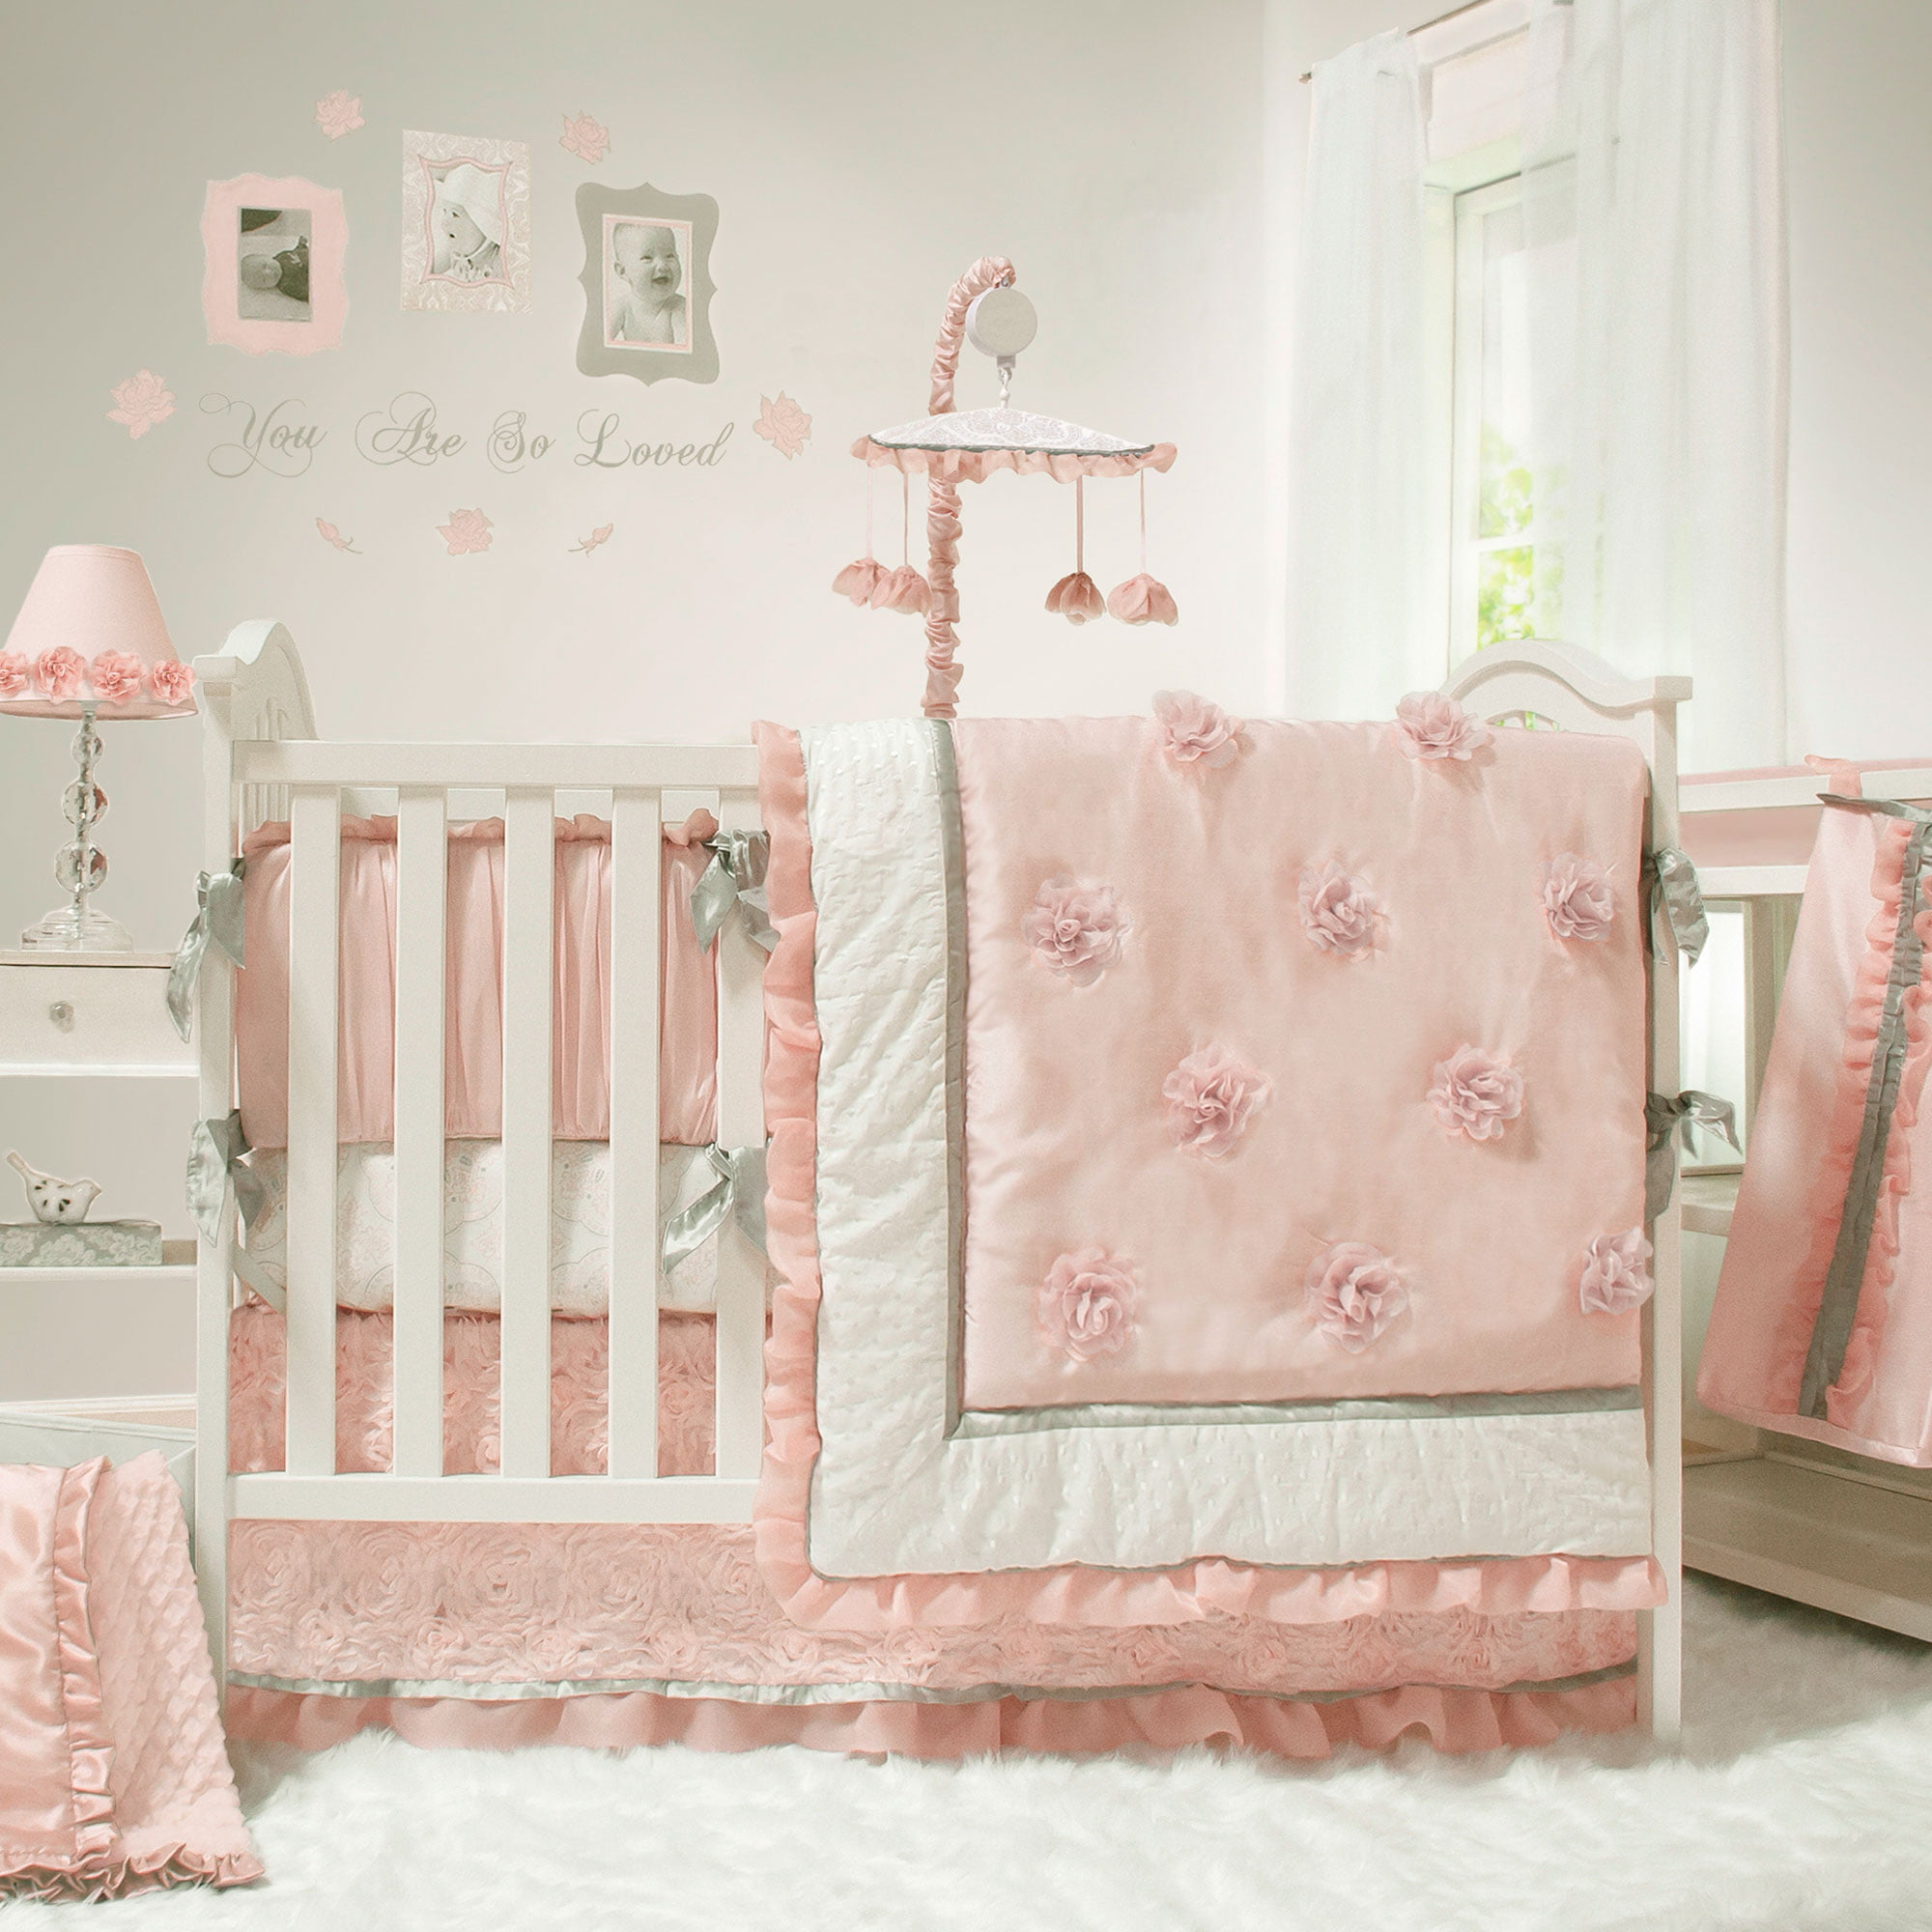 The Peanut Shell Baby Crib Bedding Set Pink And White Arianna 4 Piece